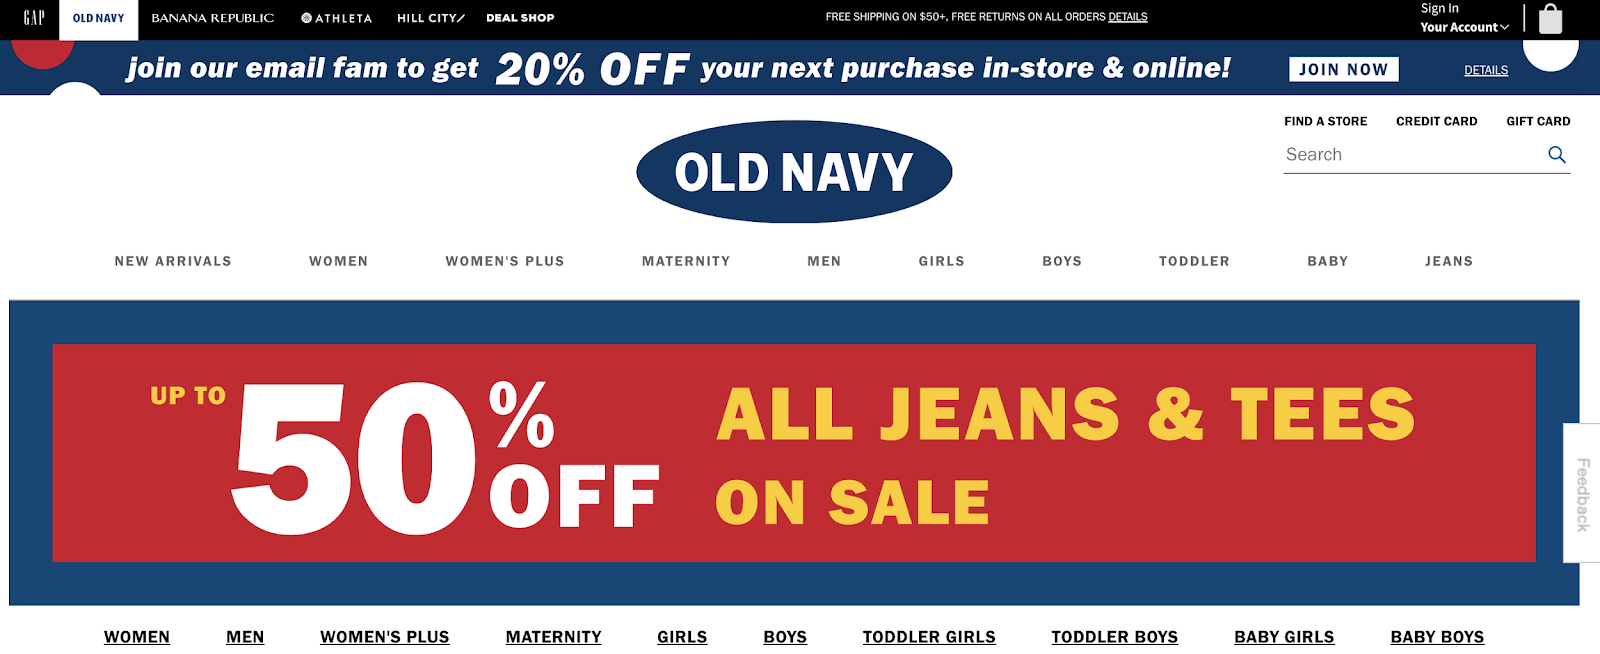 old navy website header uses bold colors to grab visitor attention